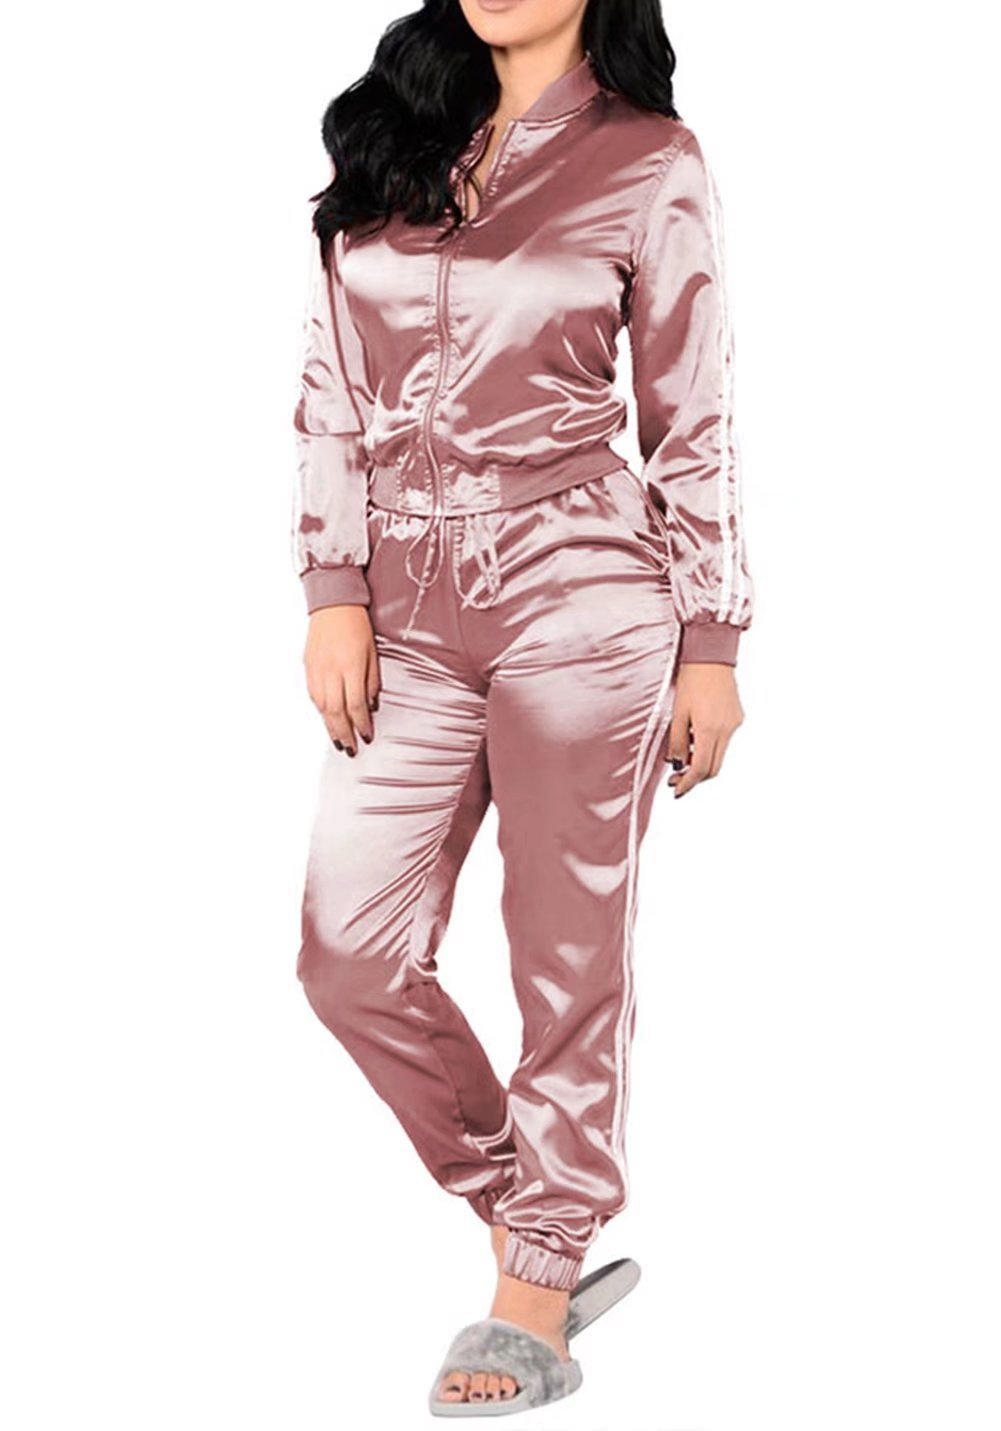 Women's Tracksuit Zip-Up Jacket and Pants Sports Joggers Jog Set 2 Piece Pink S